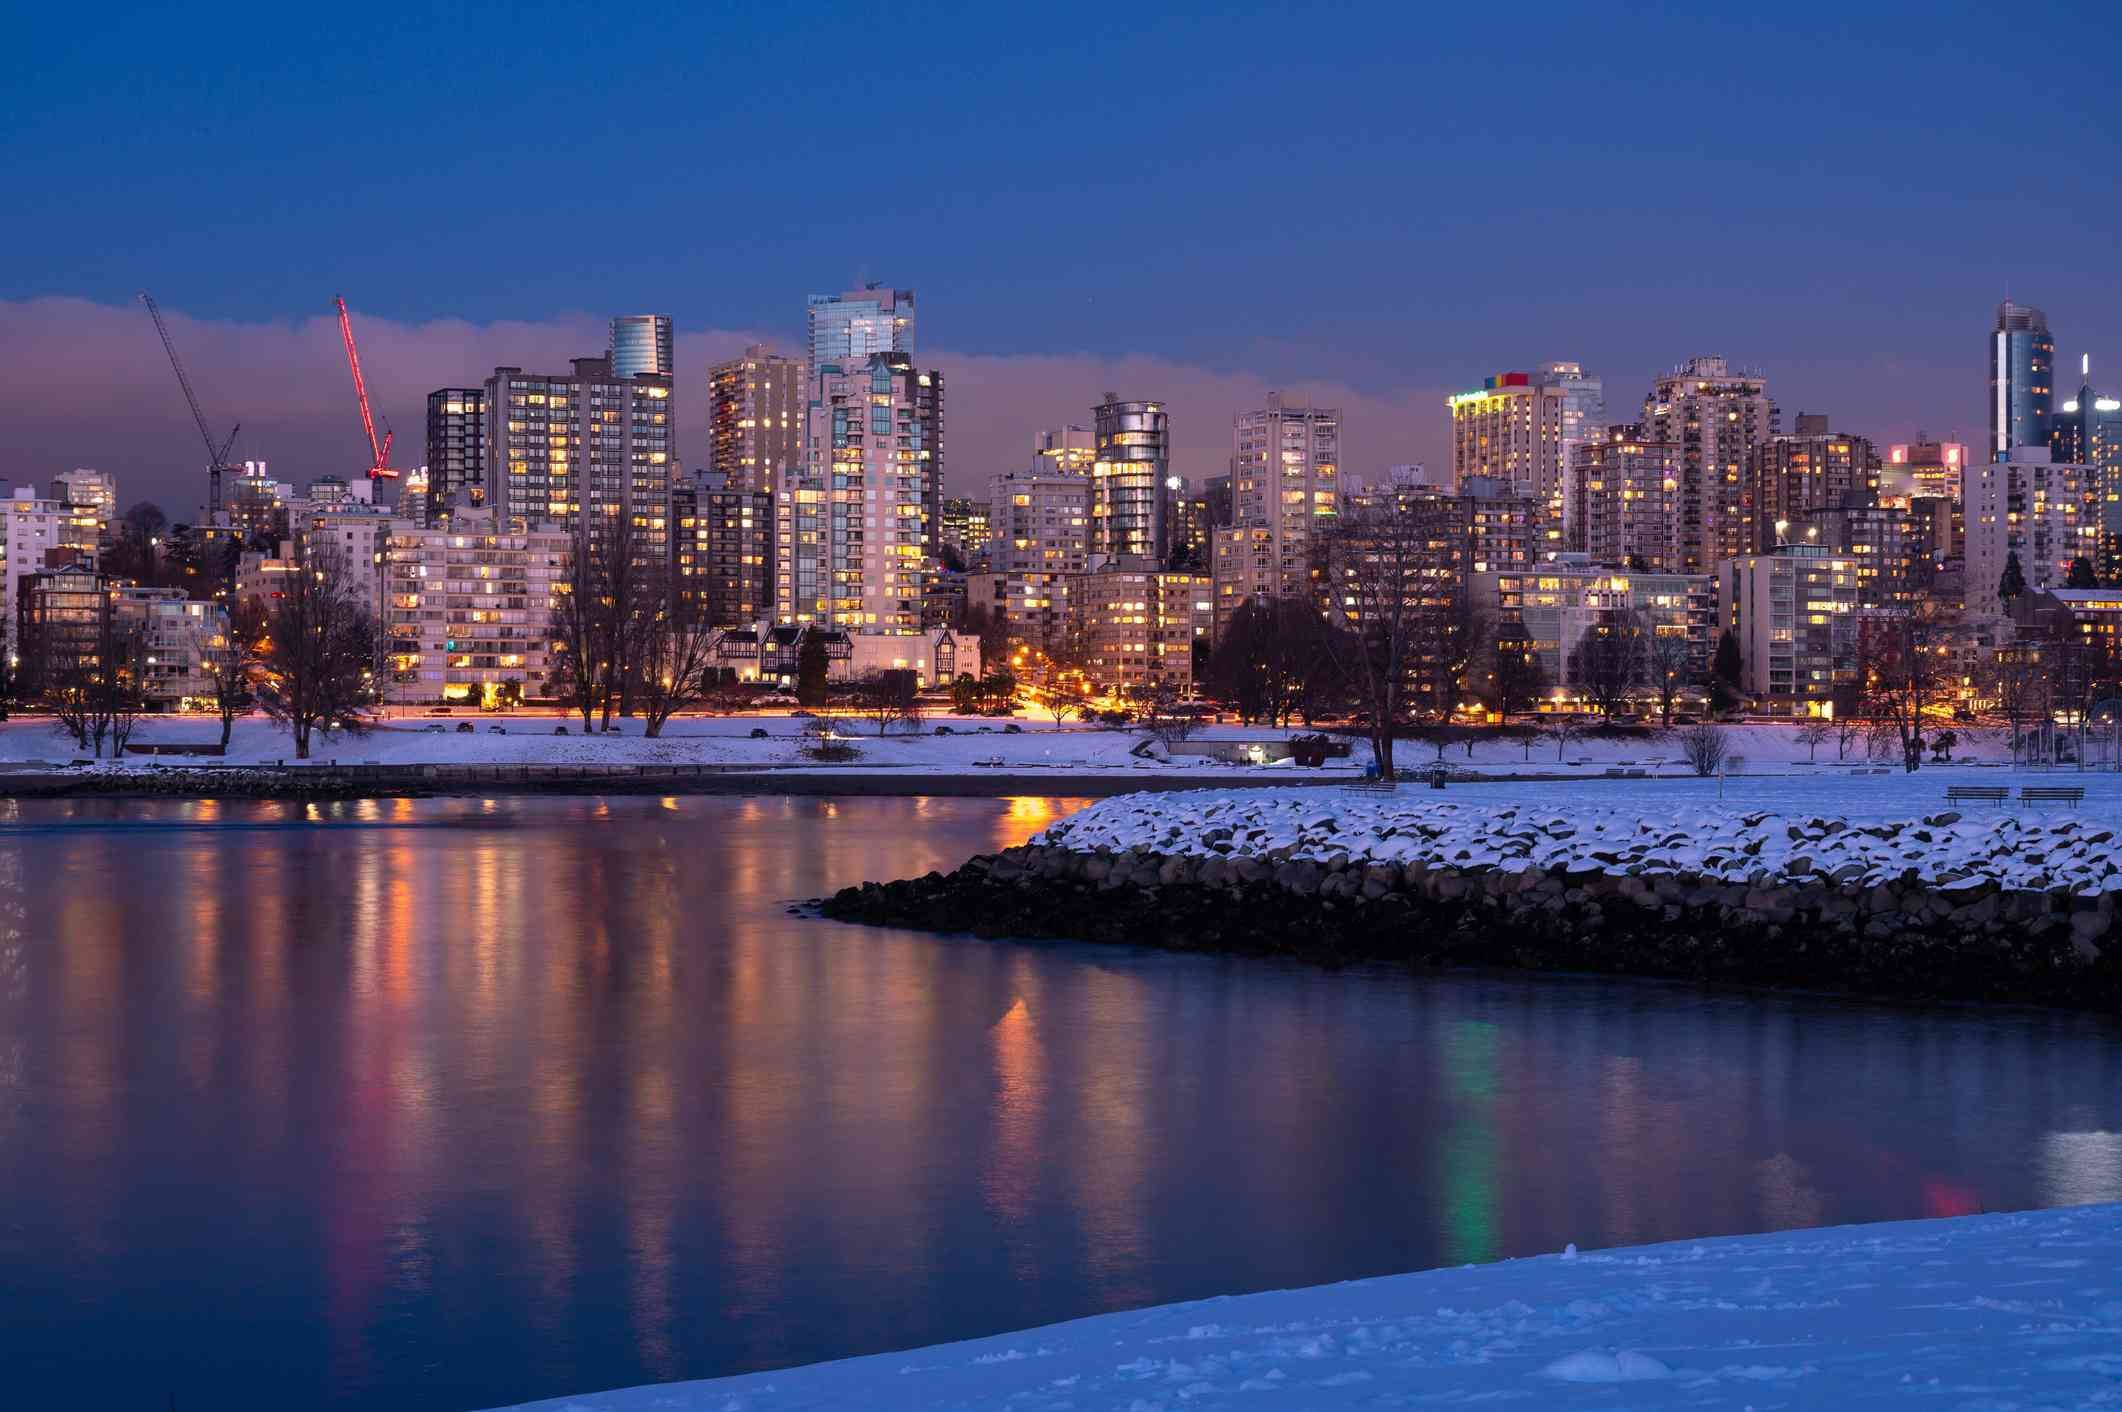 Vancouver skyline surrounded by fresh snow in winter